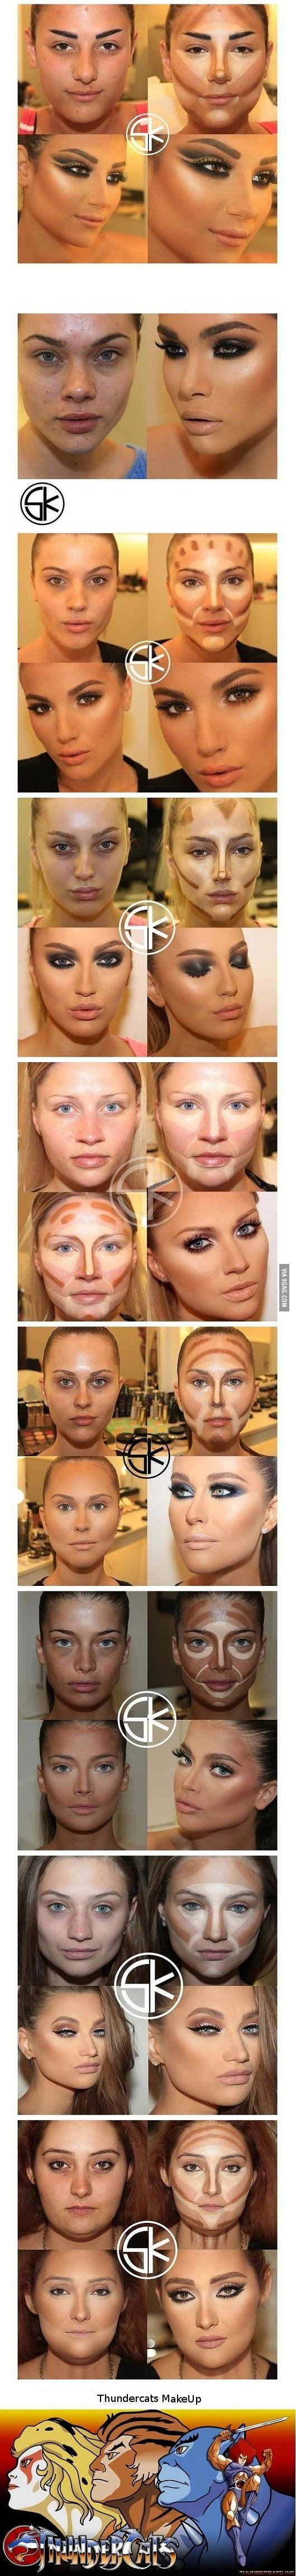 This is actually helpfull makeup tutorial...(just don't go extrem...) If you do, it's nothing but lies, don't forget to take them to the pool.